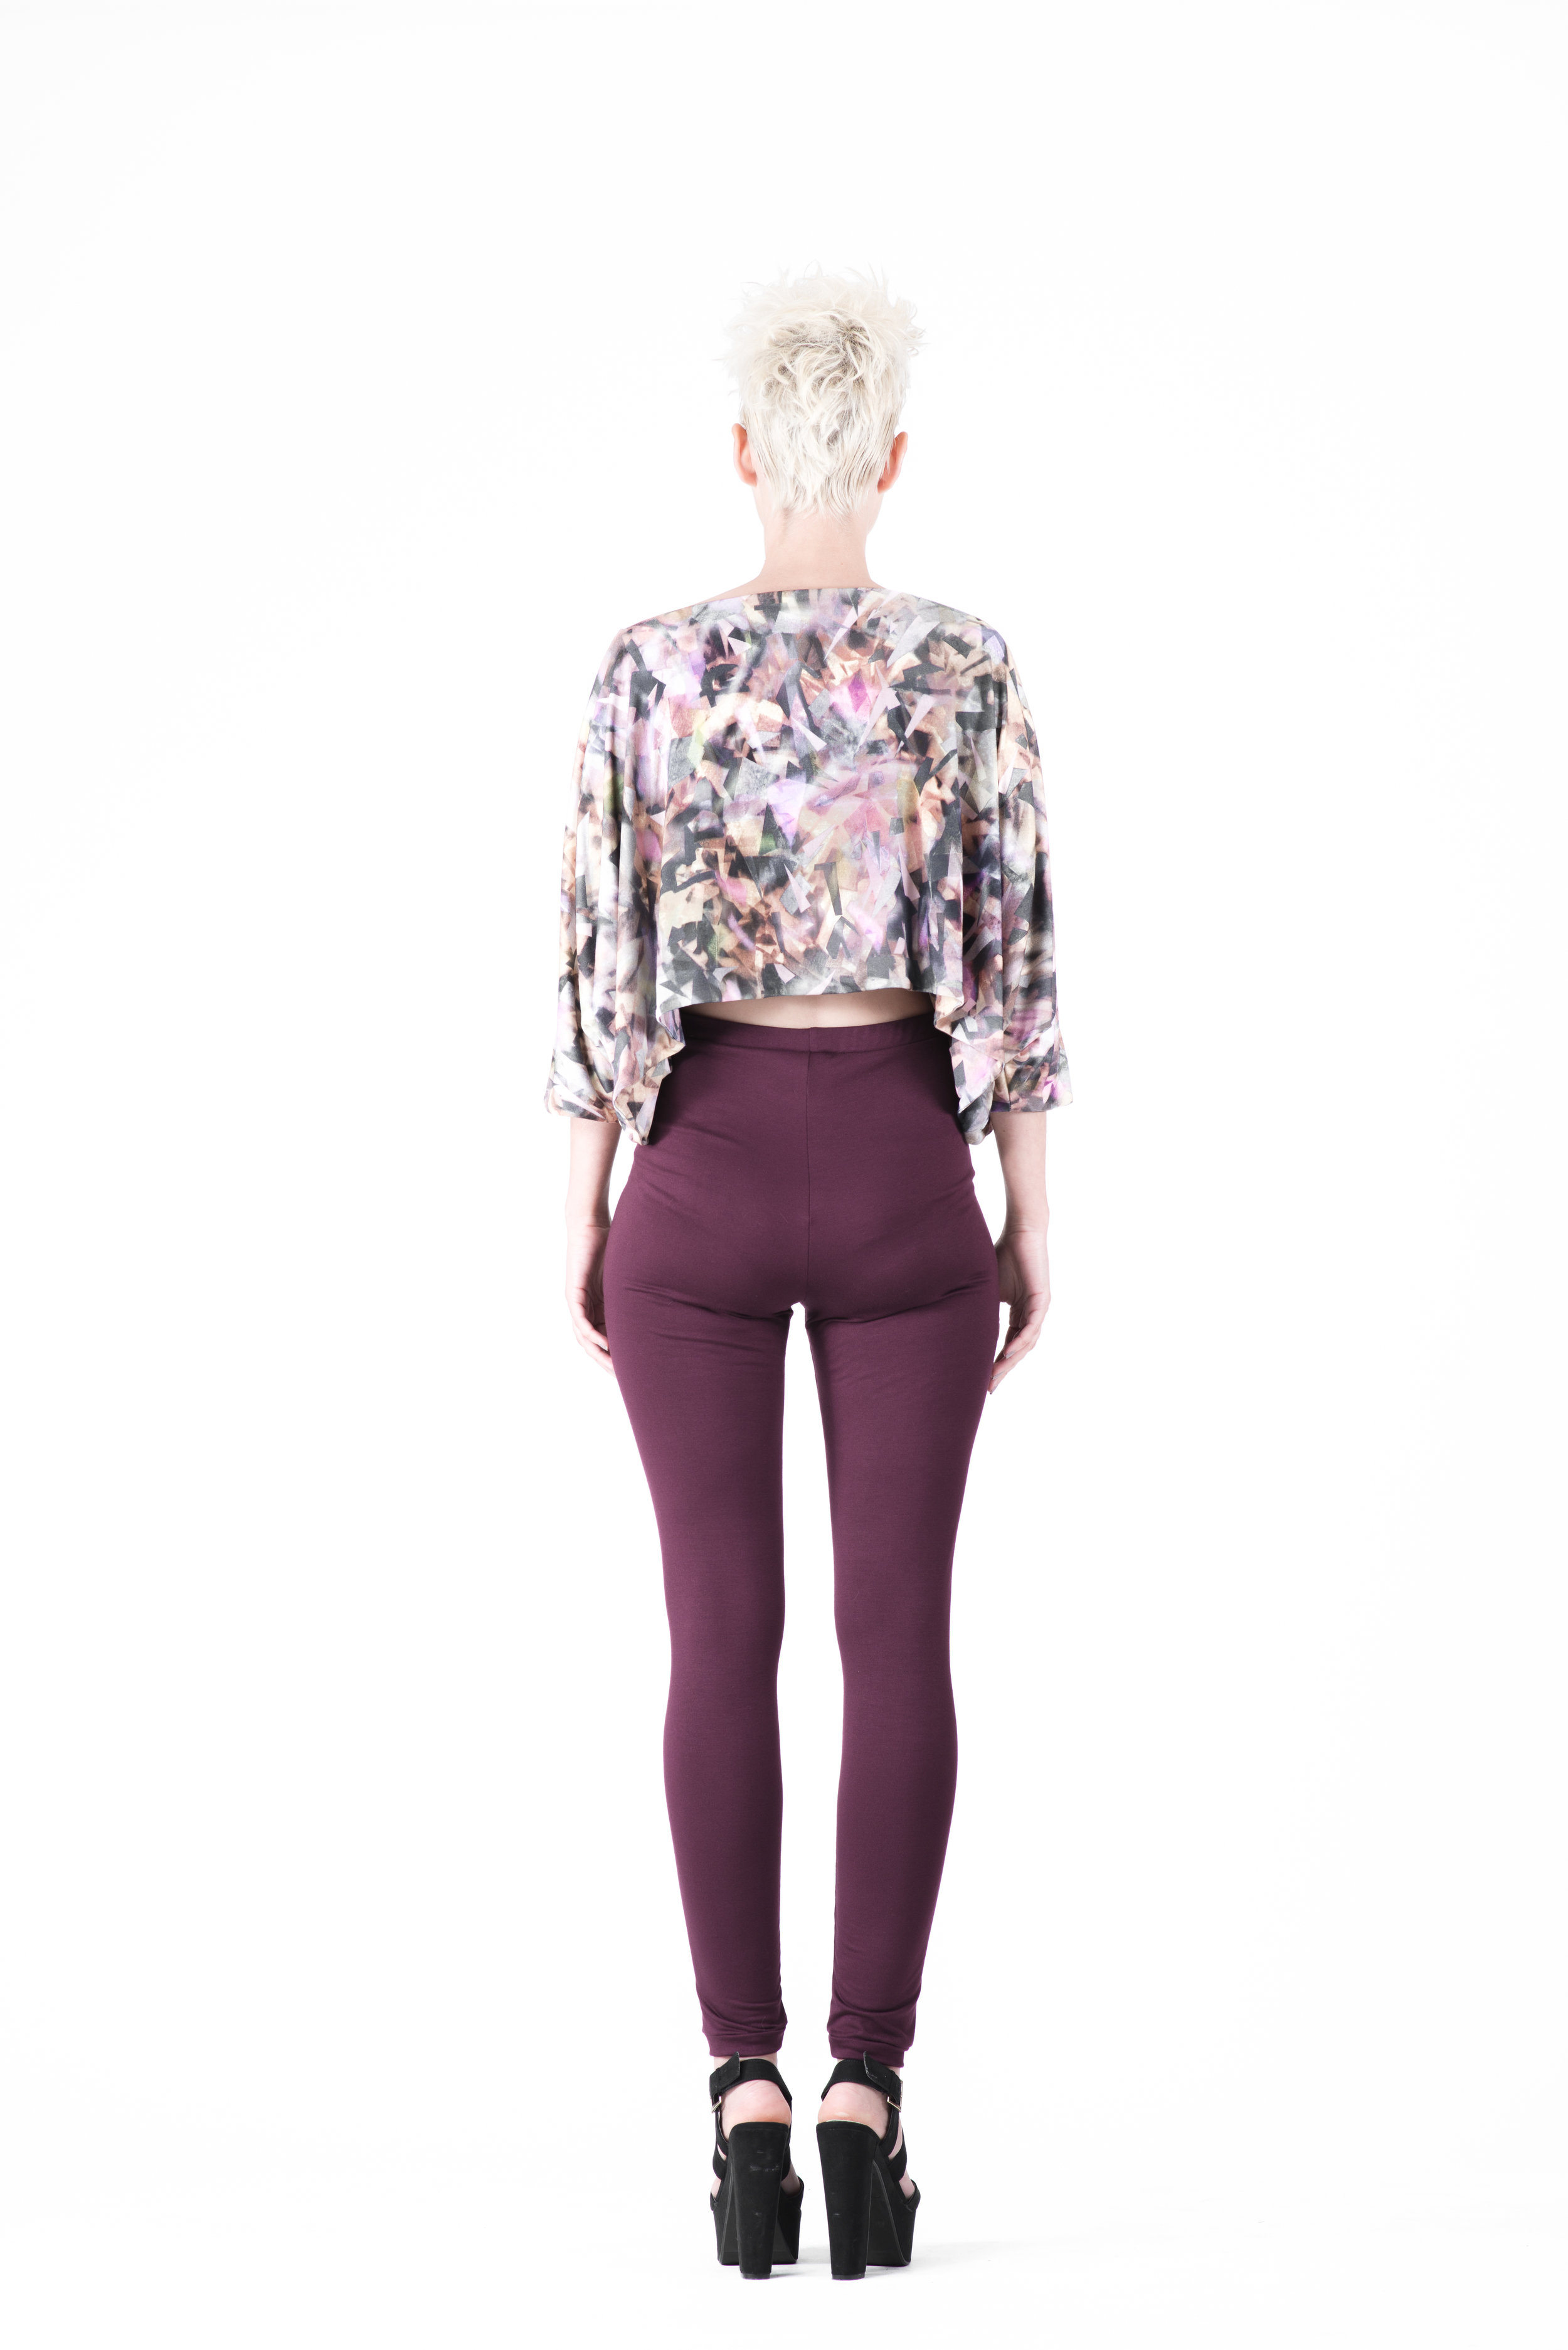 zaramia-ava-zaramiaava-leeds-fashion-designer-ethical-sustainable-tailored-minimalist-mika-print-crop-top-versatile-rei-plum-legginges-drape-cowl-styling-womenswear-models-photoshoot-58